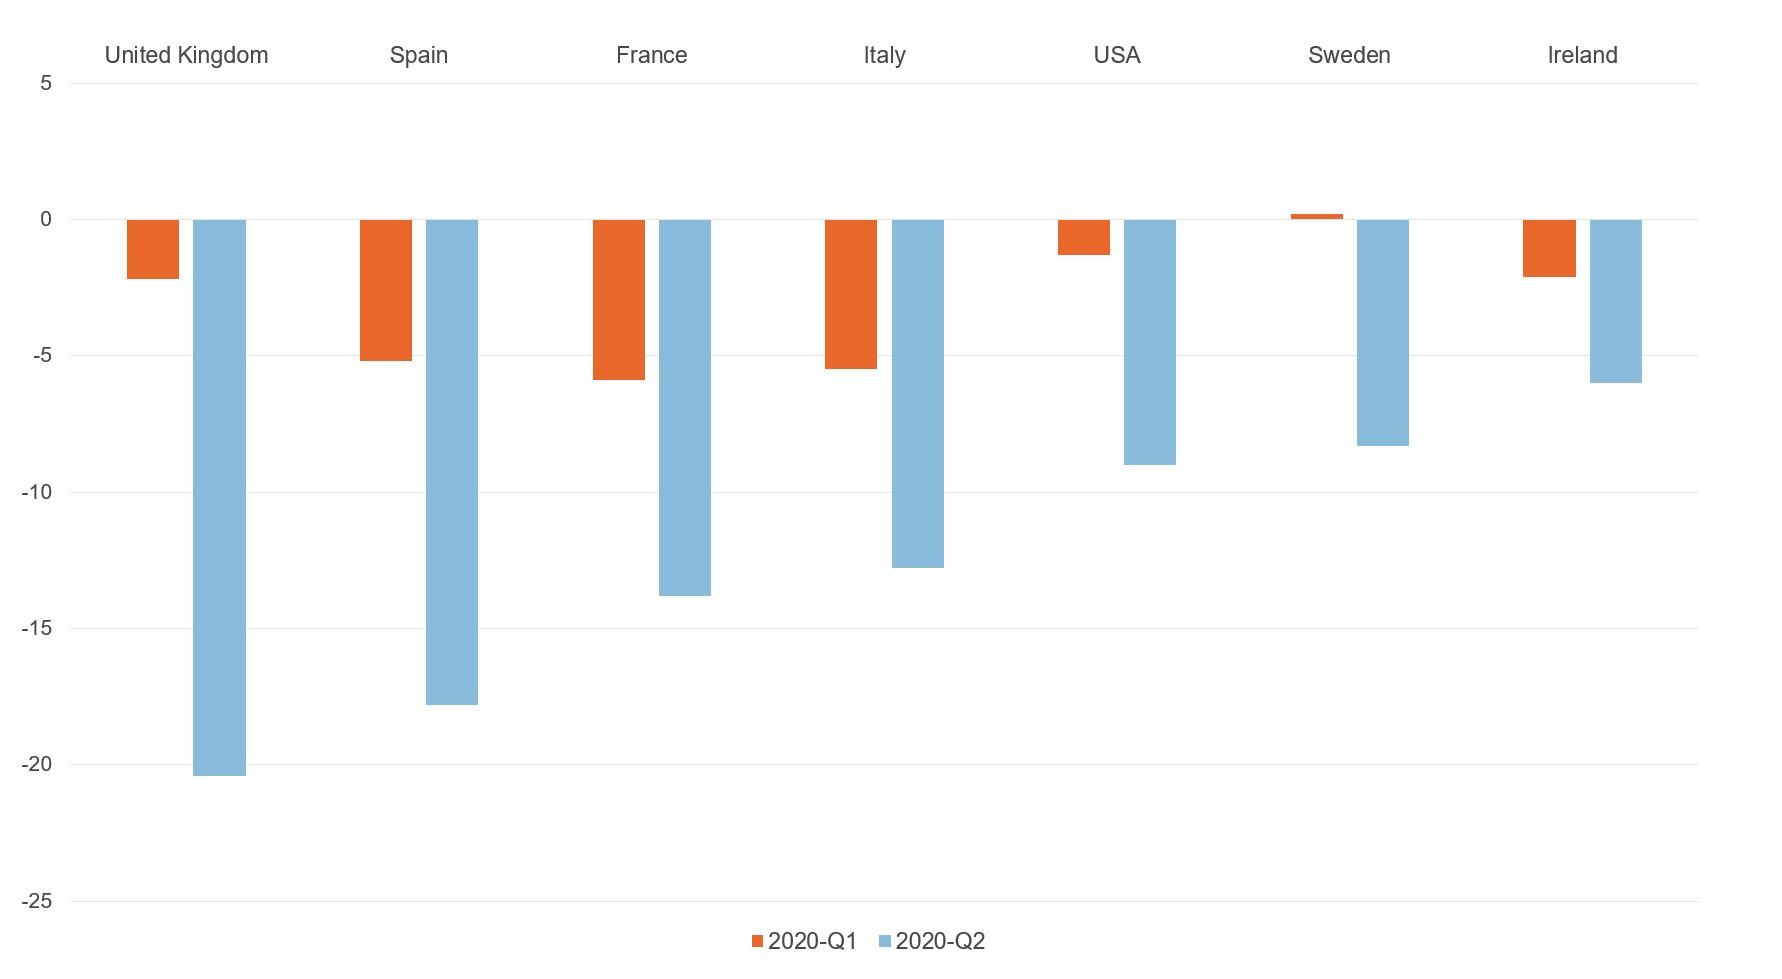 Figure showing international comparison of GDP growth rates in 2020